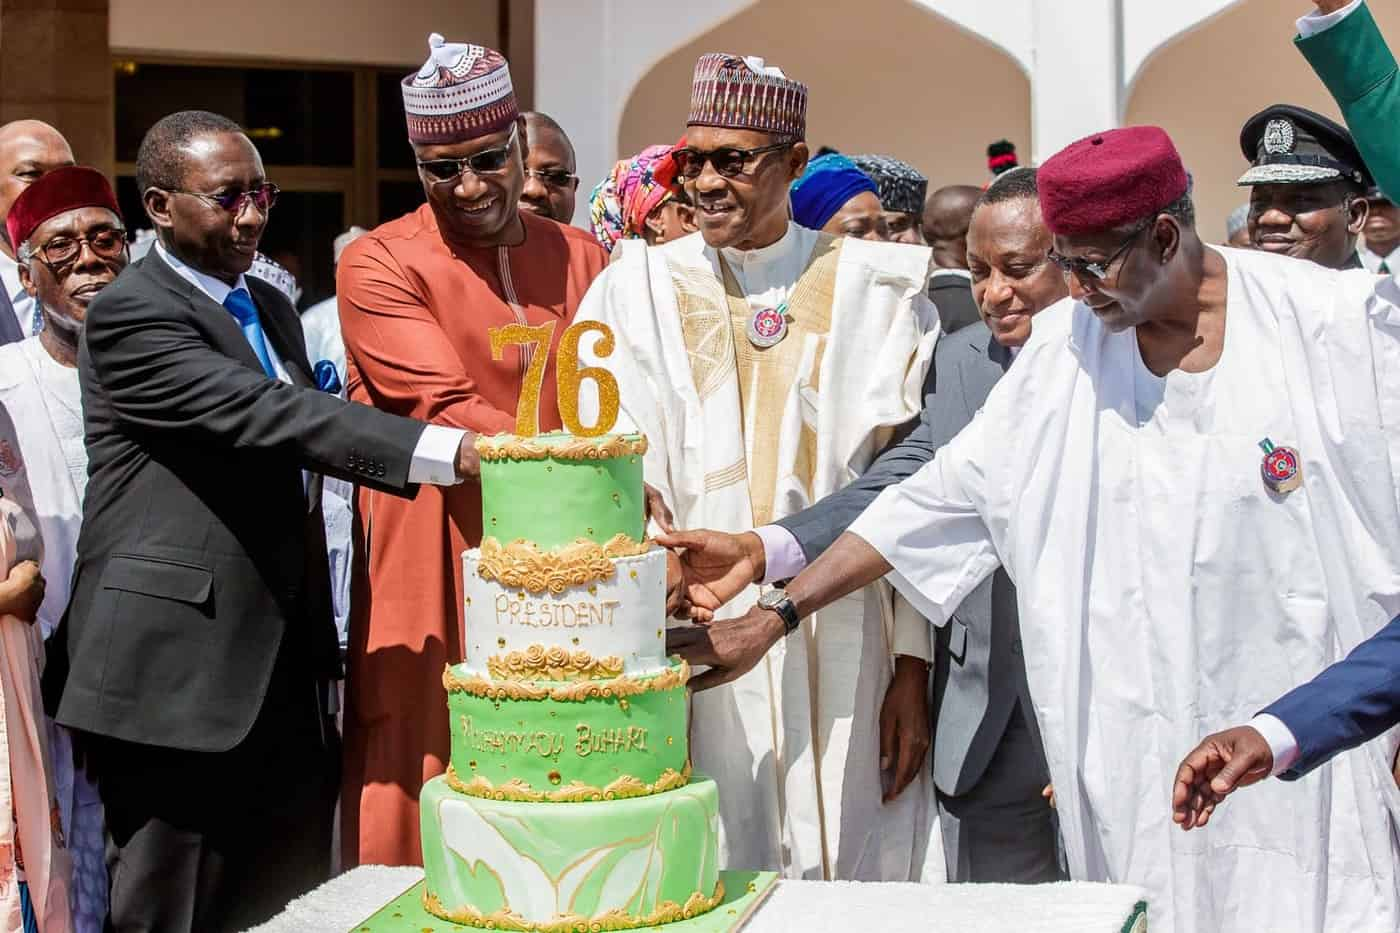 Photo of What President Buhari's Aides did to him on his 76th birthday (photos)